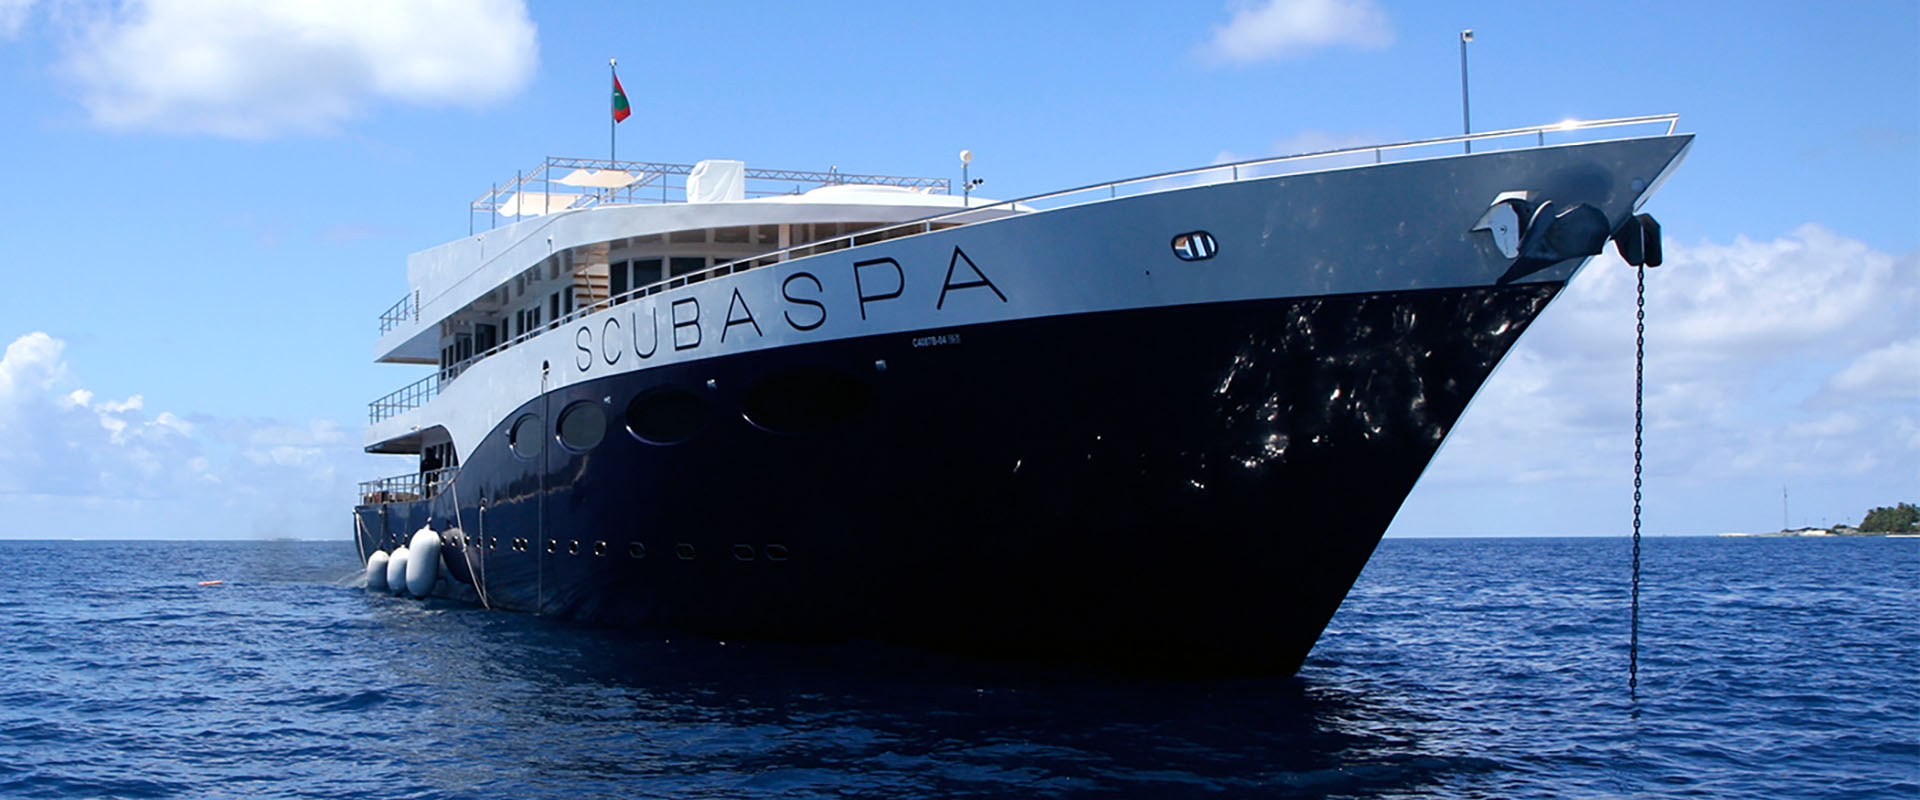 Scubaspa Maldives Liveaboards